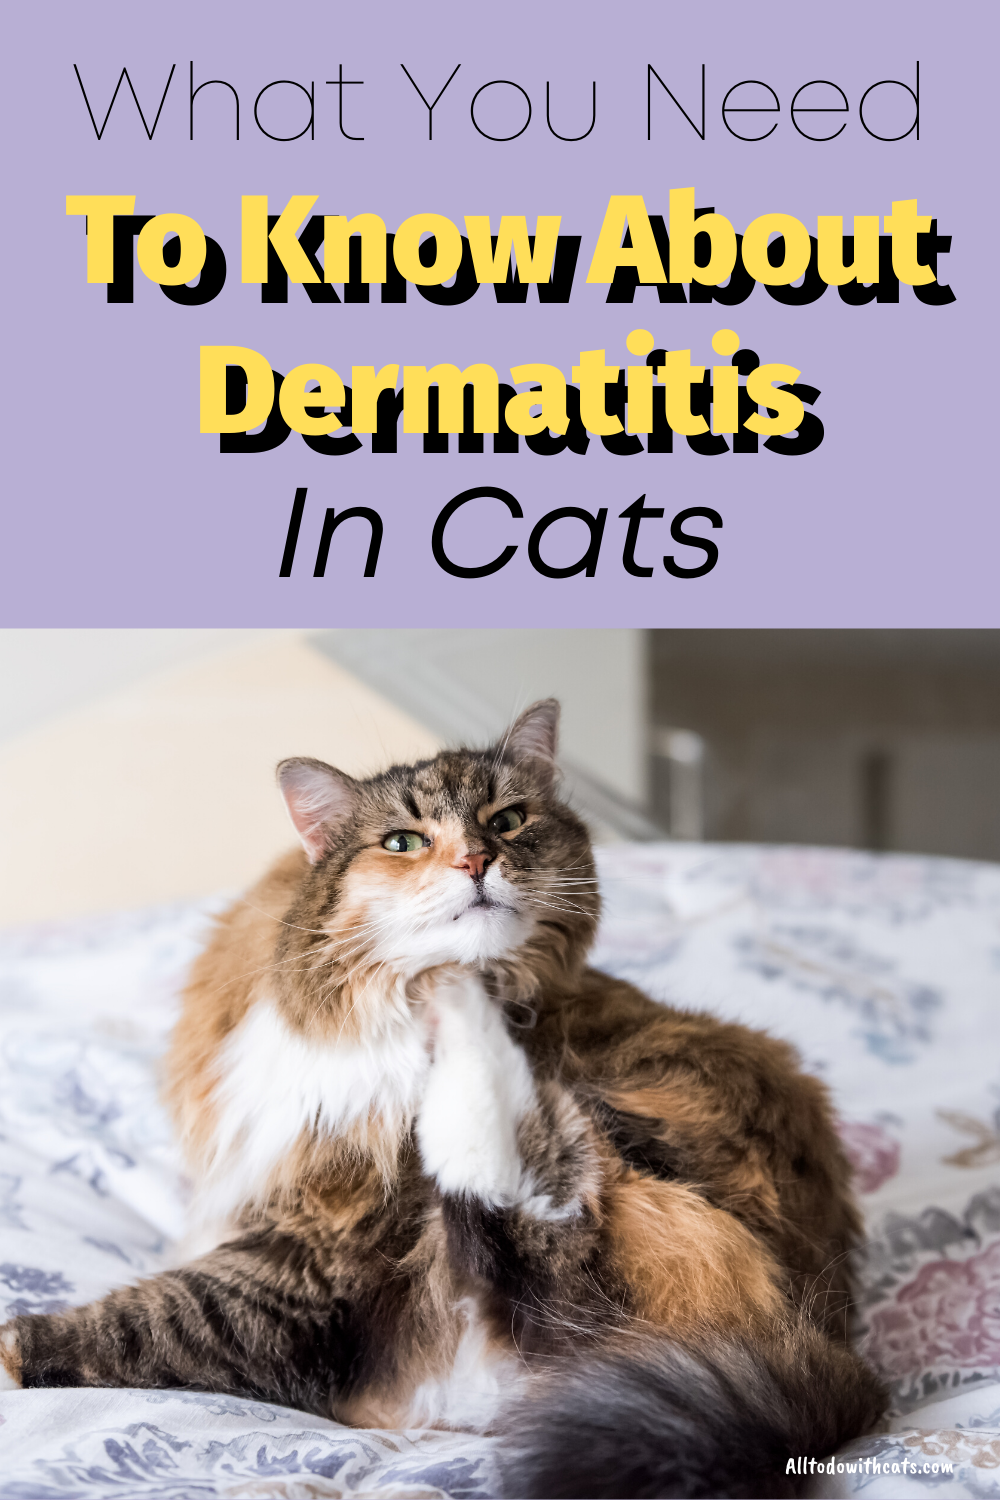 How To Treat Dermatitis In Cats What You Need To Know In 2020 Cat Skin Problems Cat Skin Cat Health Problems